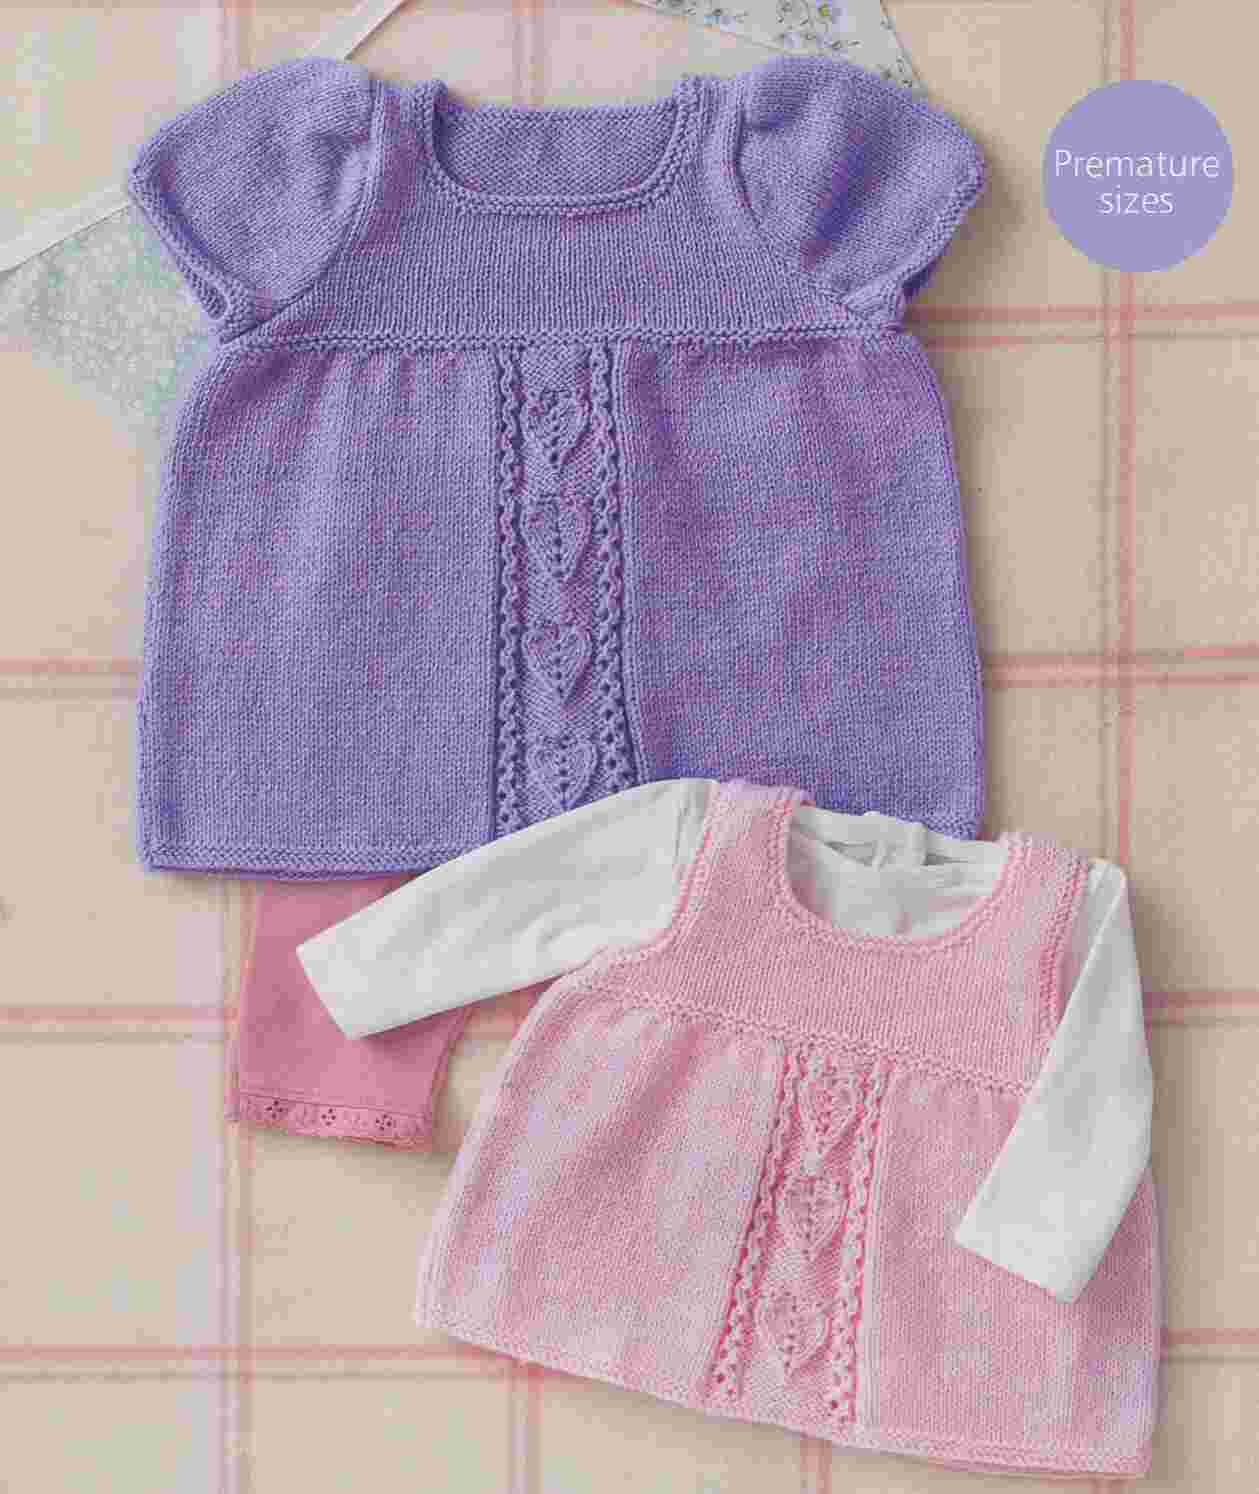 S4885 Sirdar Snuggly Baby 4ply Knitting Patterns Knitwell Wools Ltd